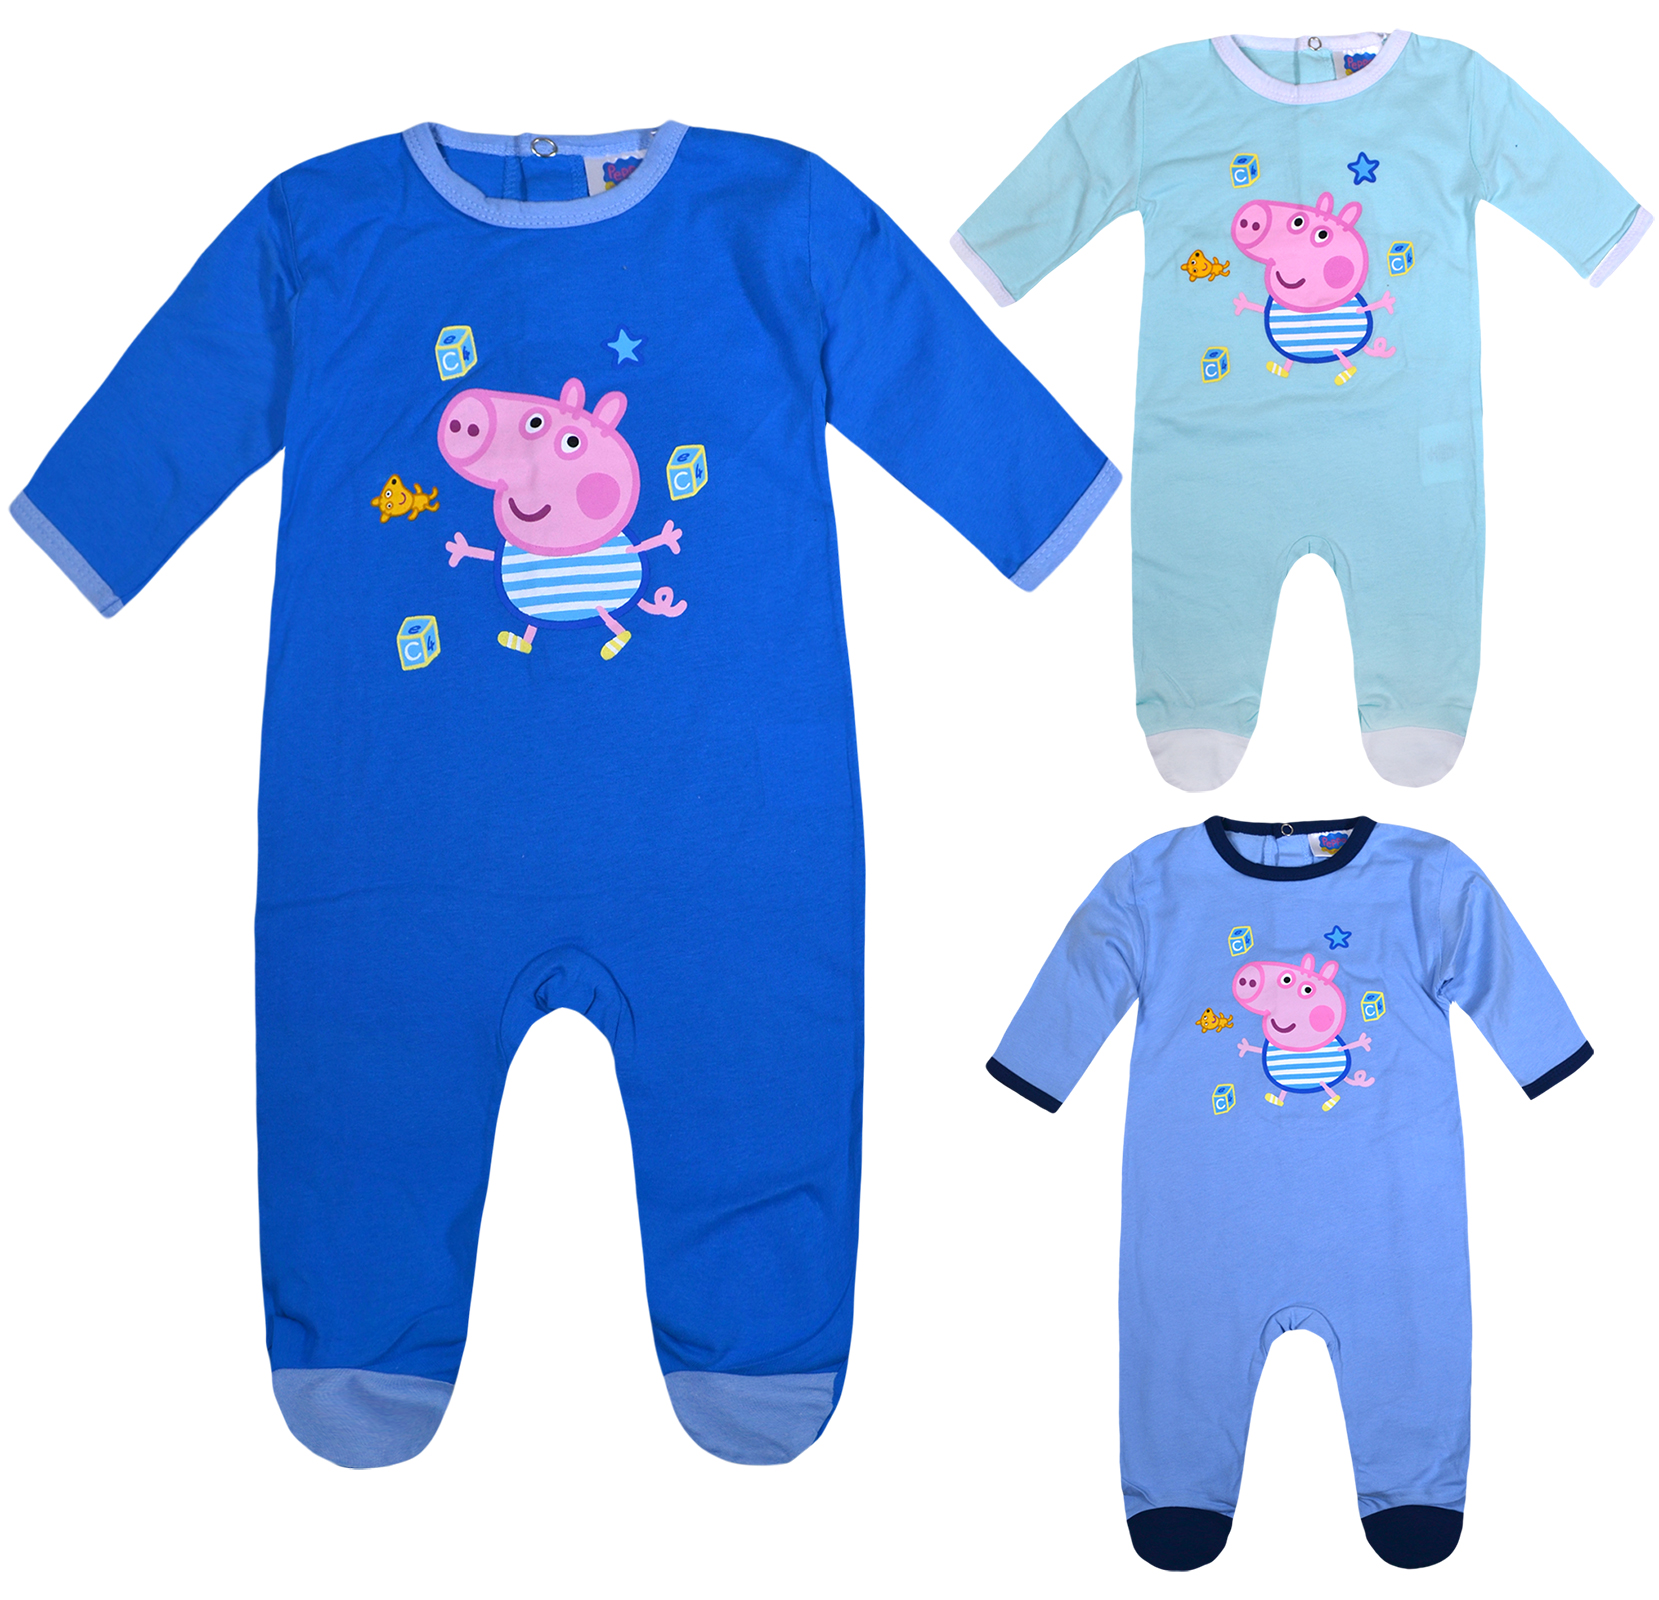 Peppa Pig Baby Boys George Pig All in One Cotton Romper Suit Sizes from 1 to 9 Months